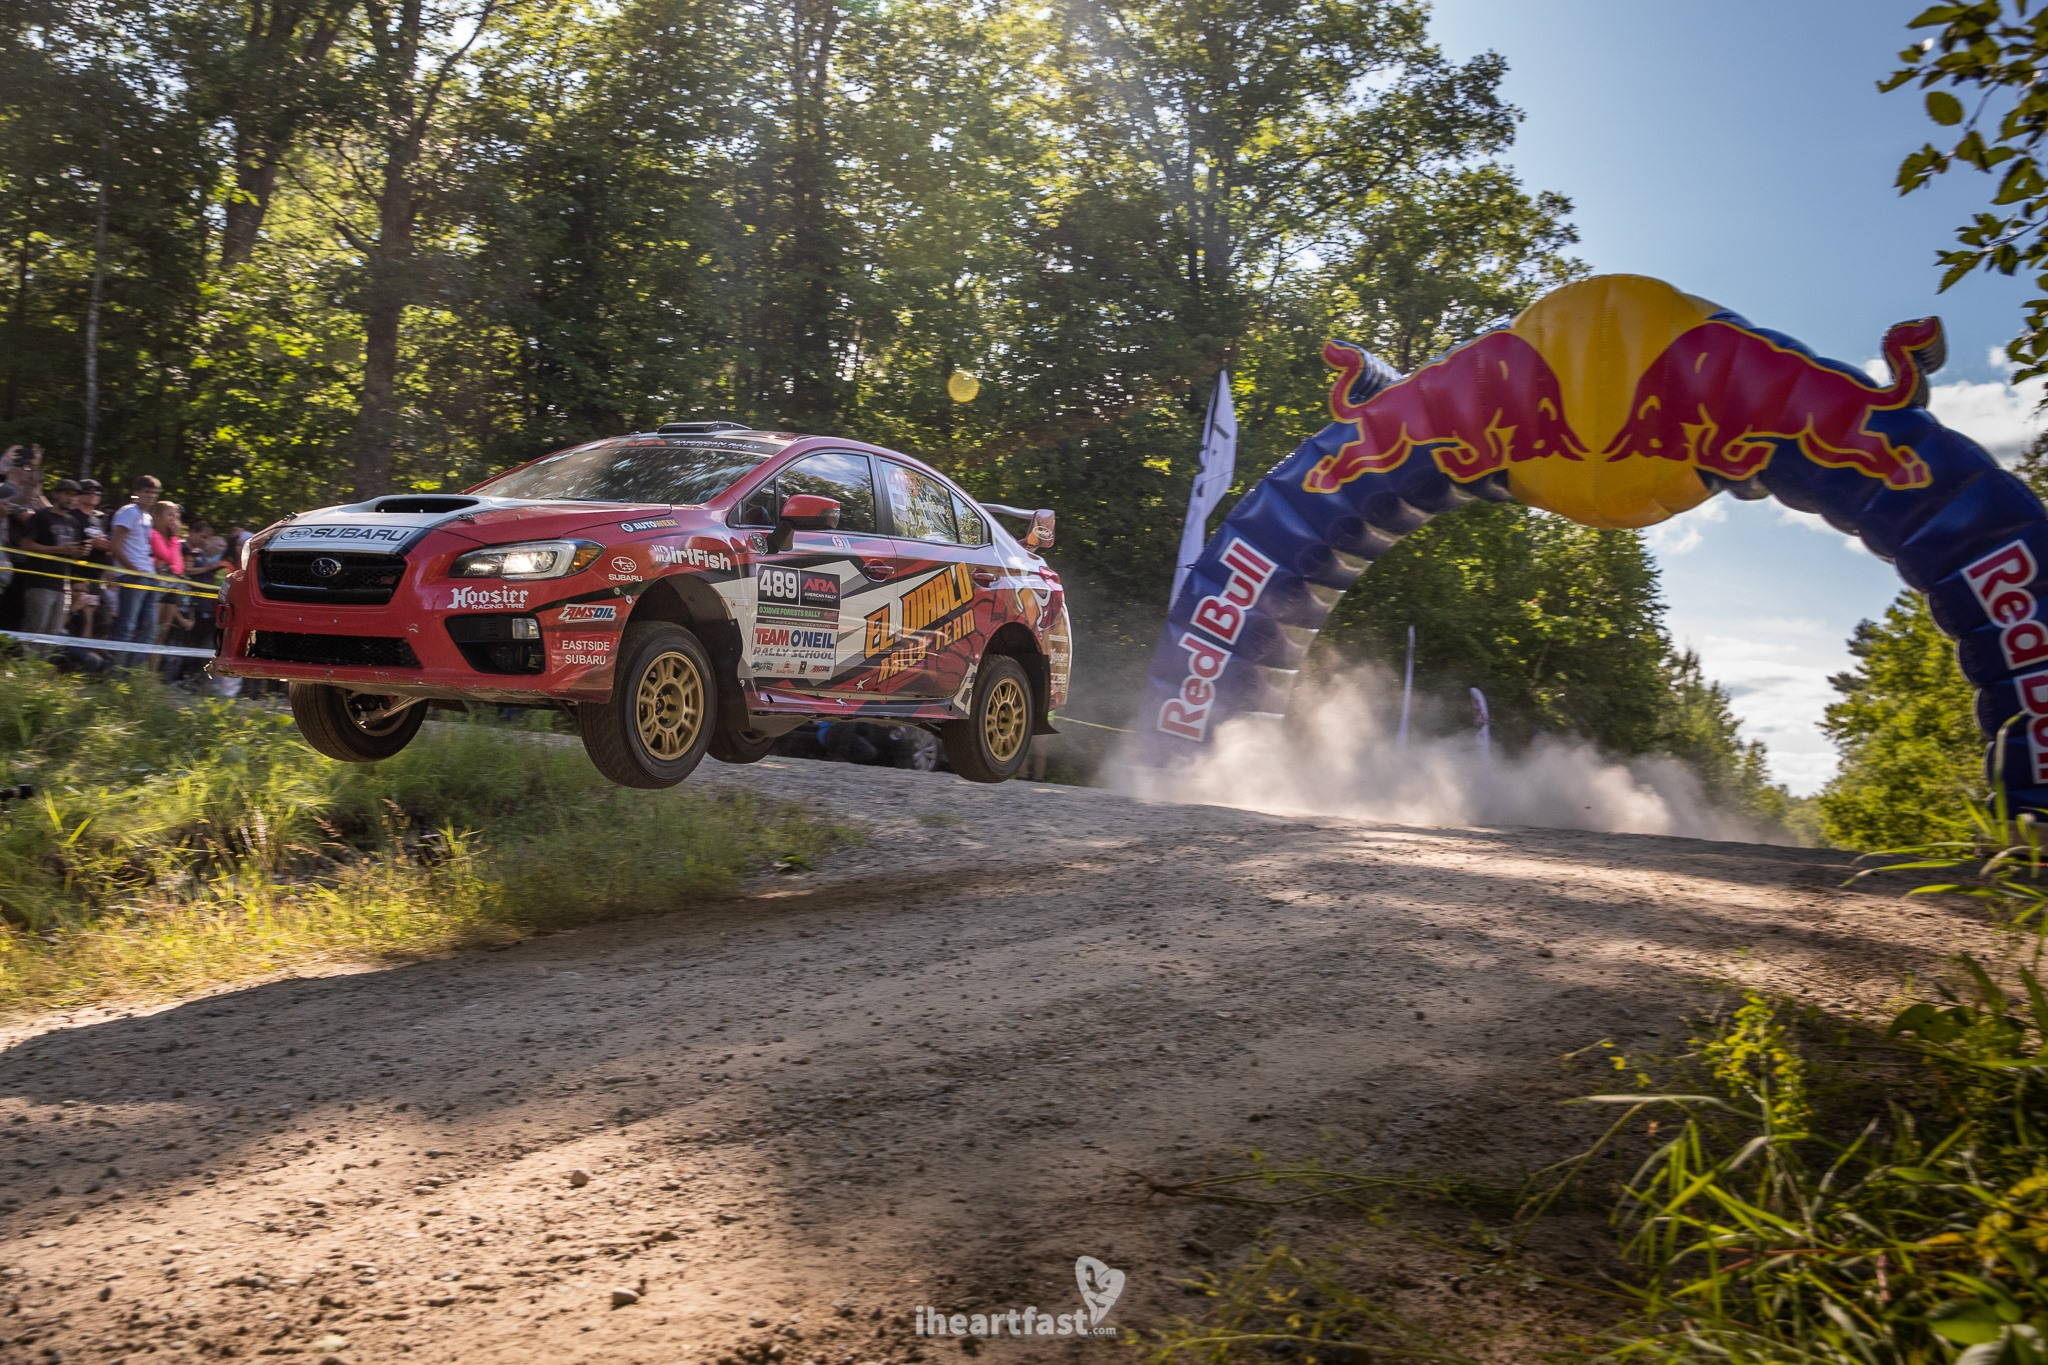 El Diablo Rally Team sending it over the Red Bull Crossroads jump.